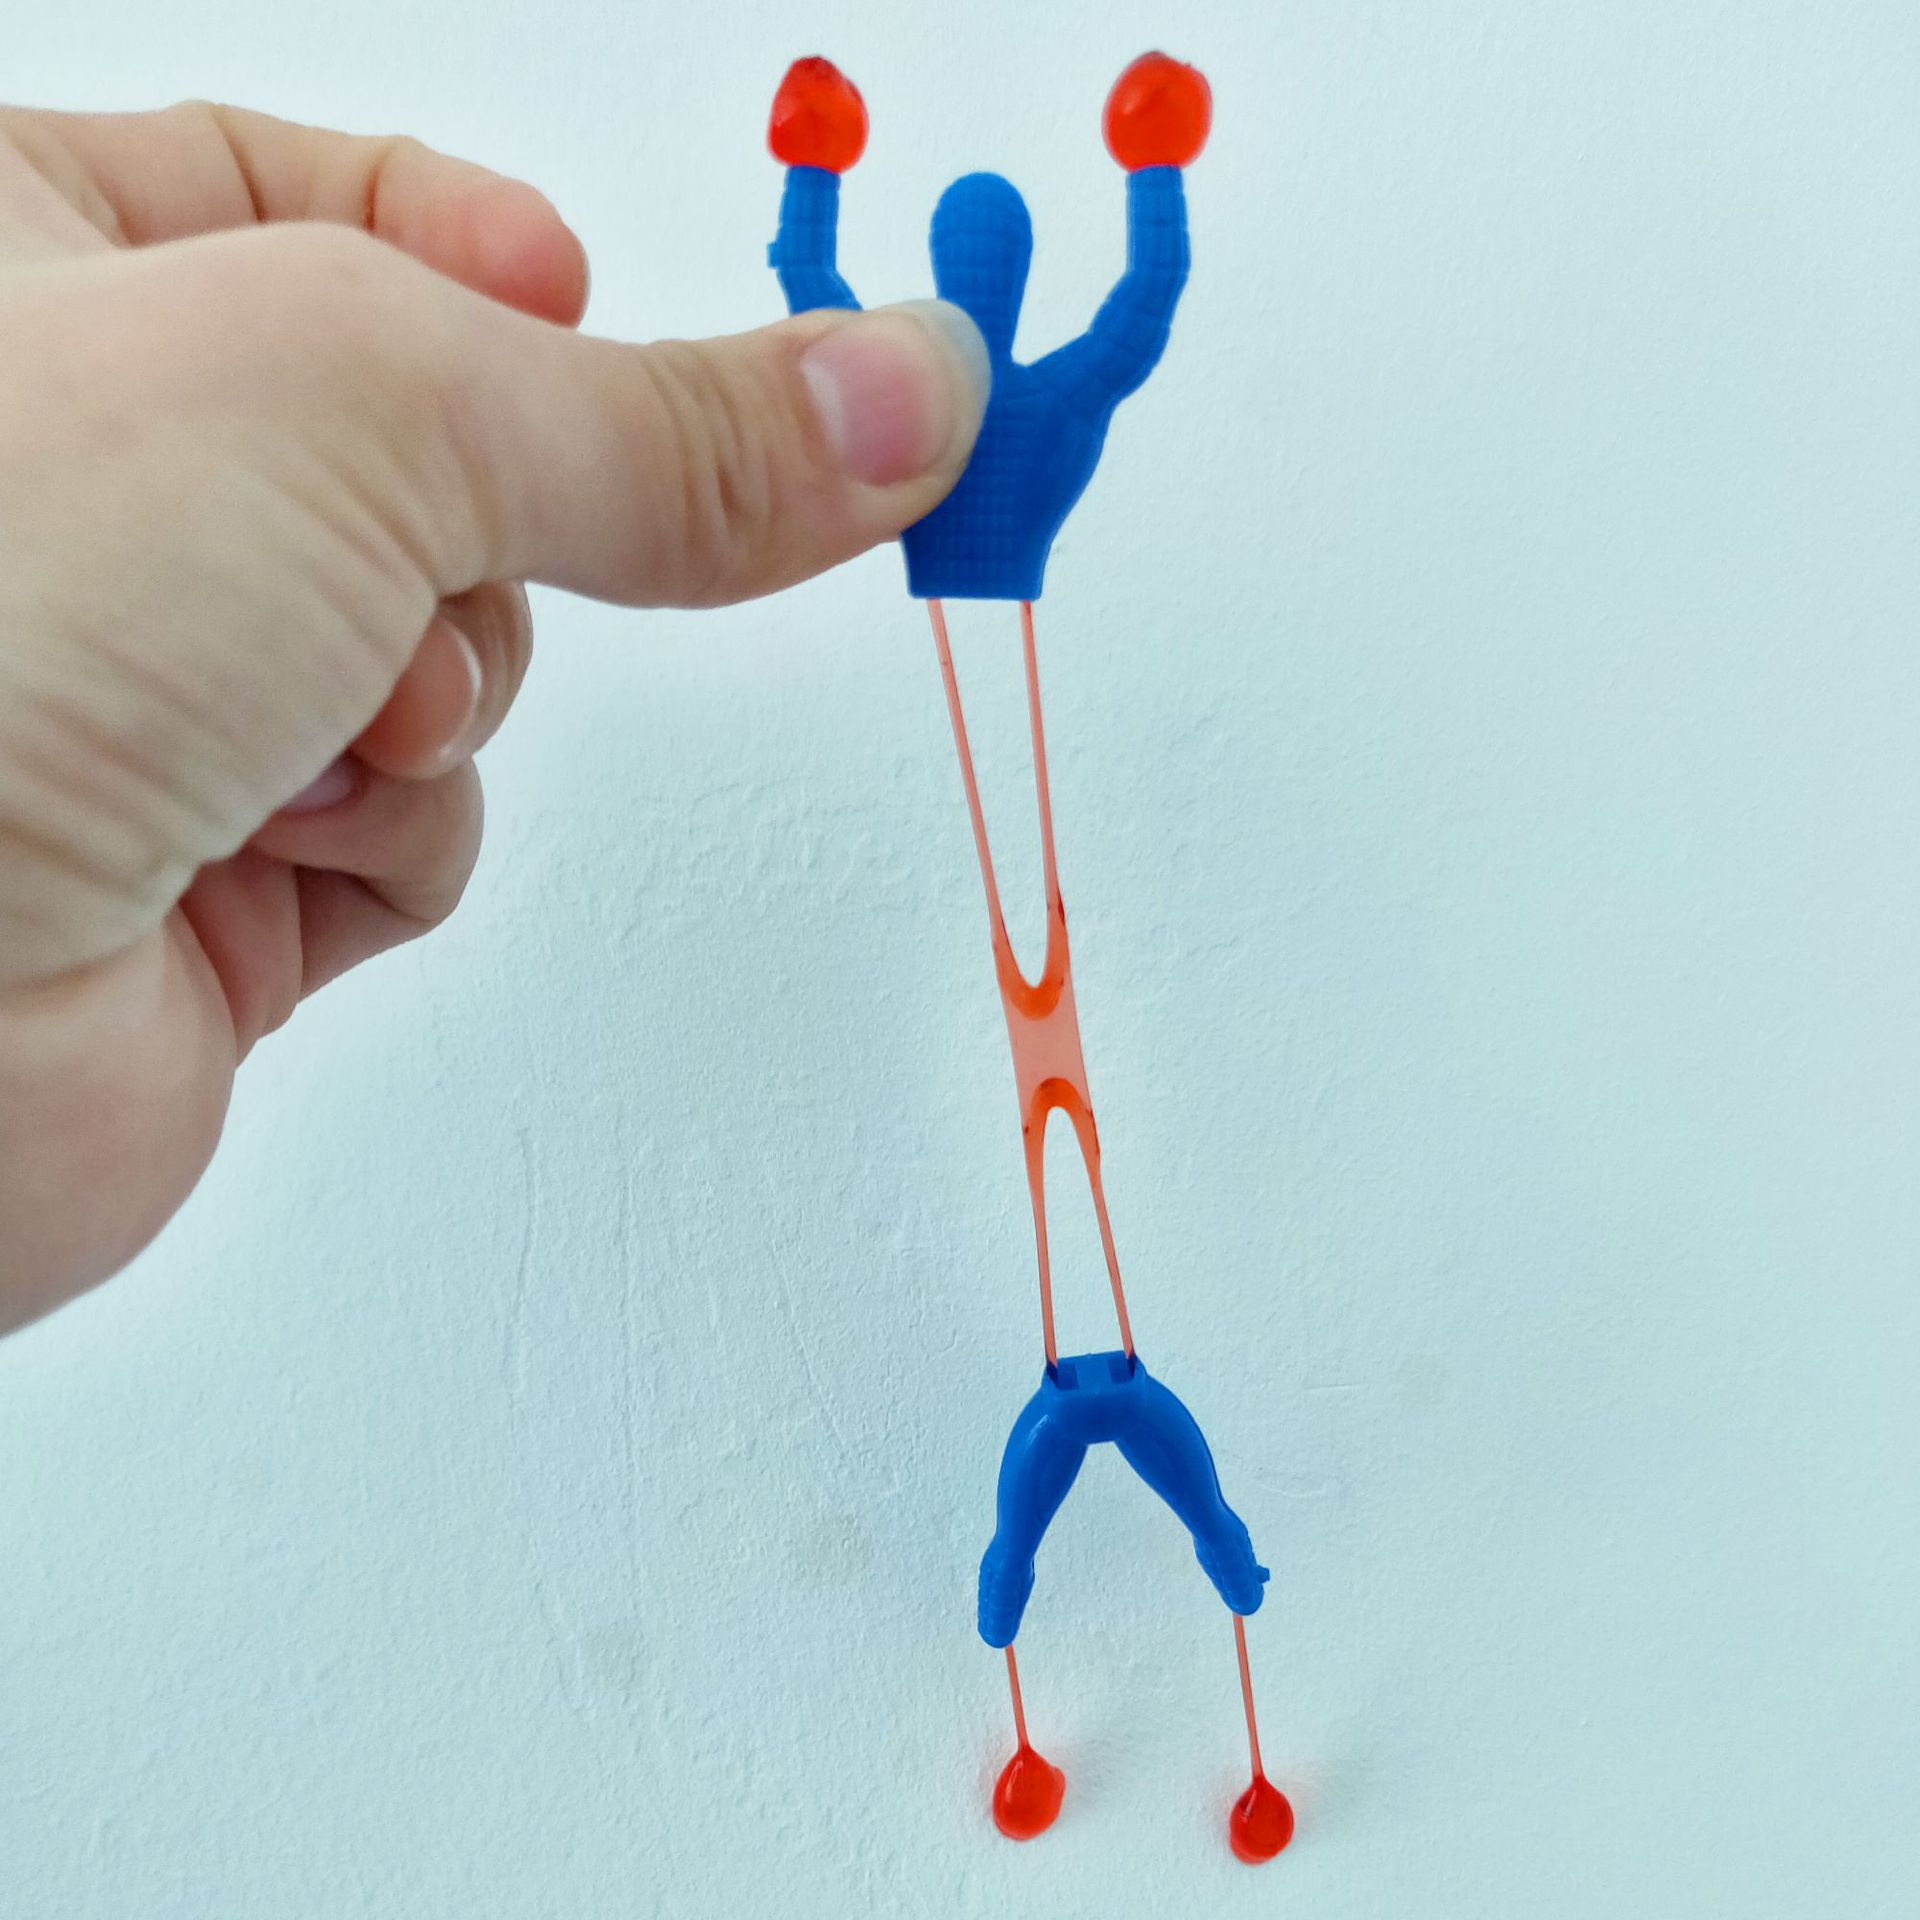 Interesting Climber Sticky Spiderman Superman 2 Yuan Shop Tradition Sensual Toys Funny Gift  Boys Toys For 10 Year Old  Pranks